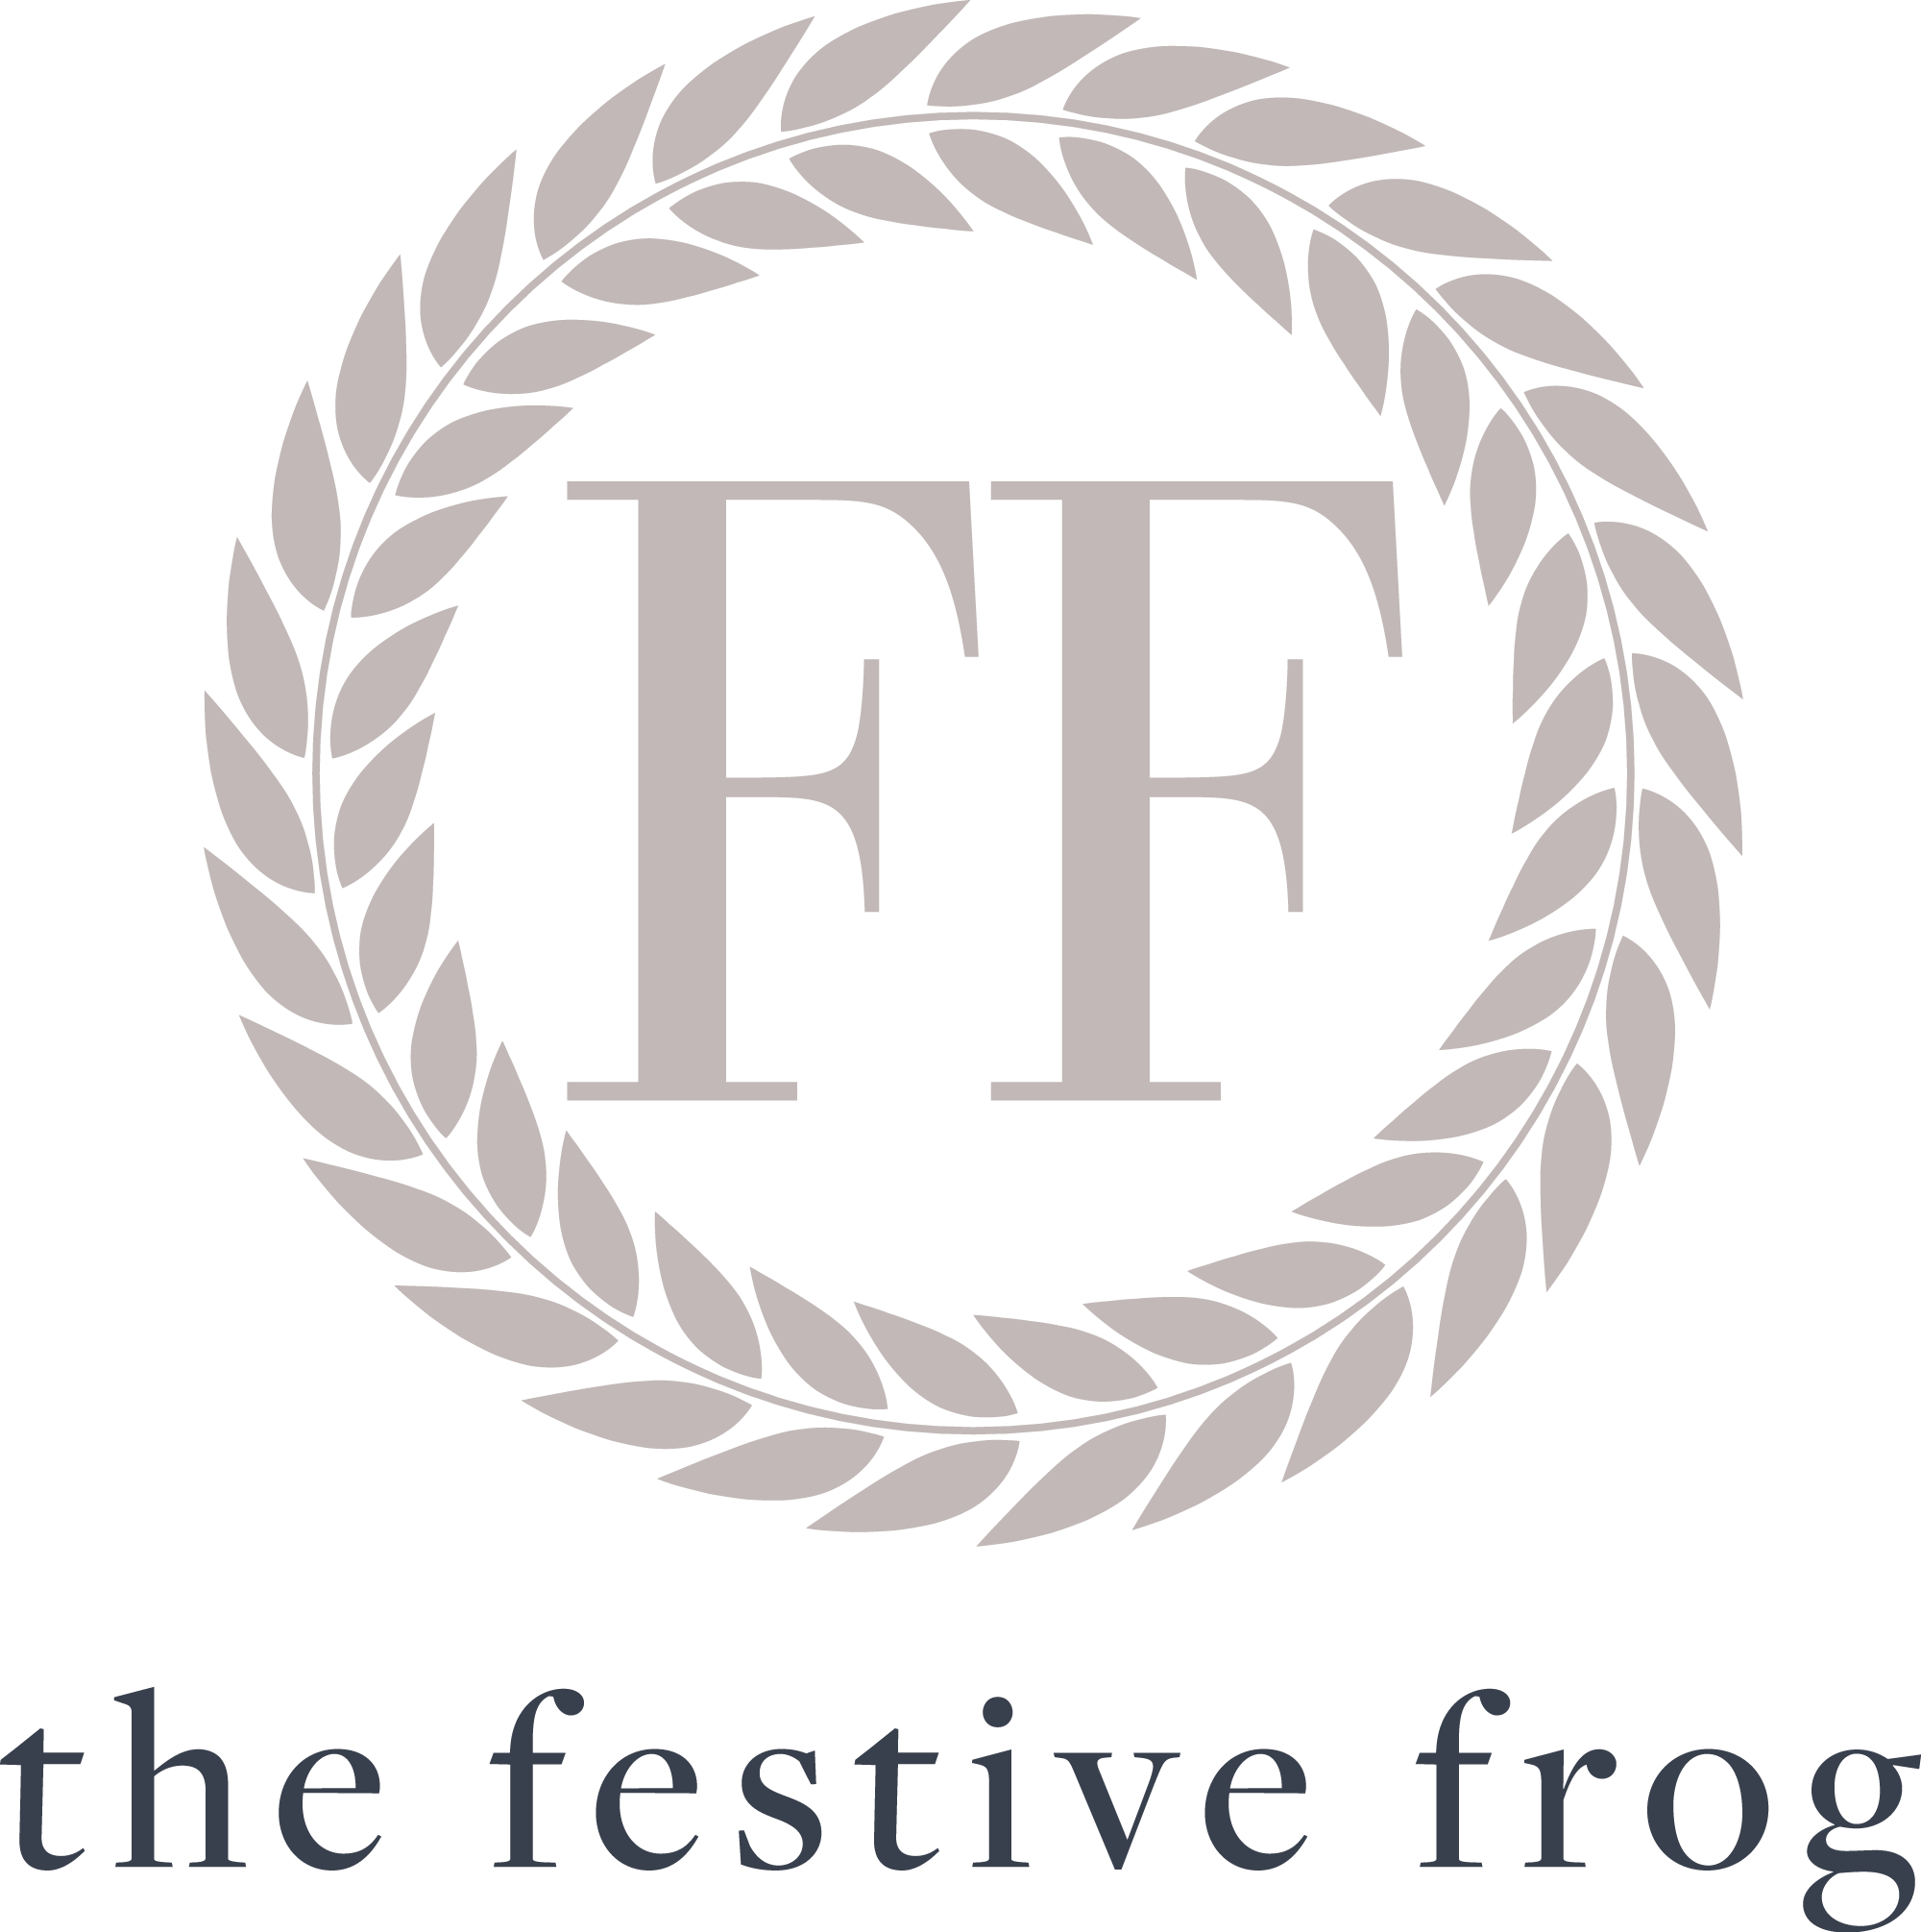 Frances Bacon Art shoot - The Festive Frog